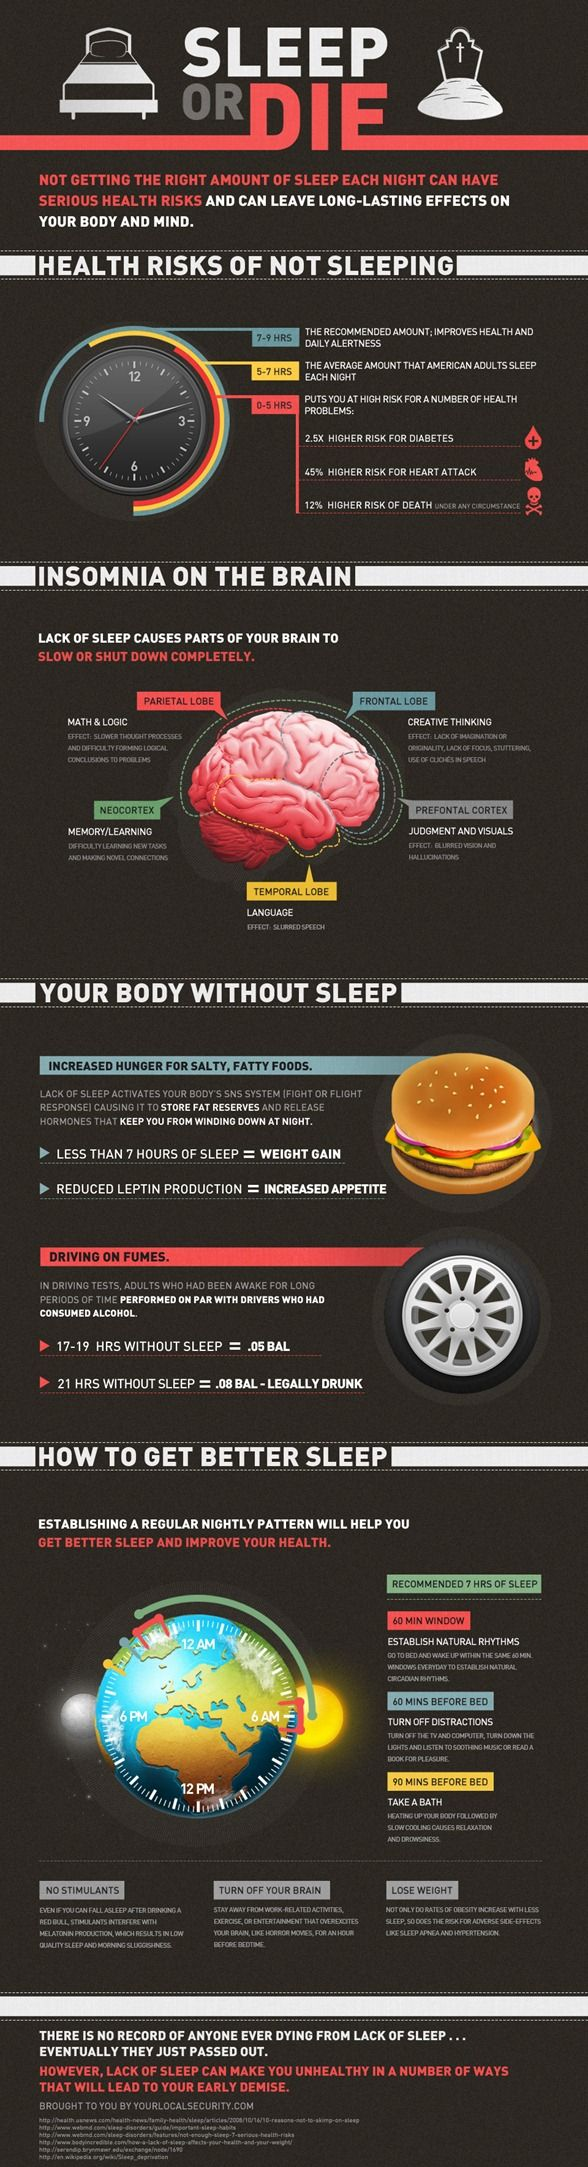 Less that 5 hours of sleep can actually increase your risk of diabetes by as much as 2 1/2 times. It can also lead to increase in heart attack by 45%. In general it increases your risk of death by 12%.